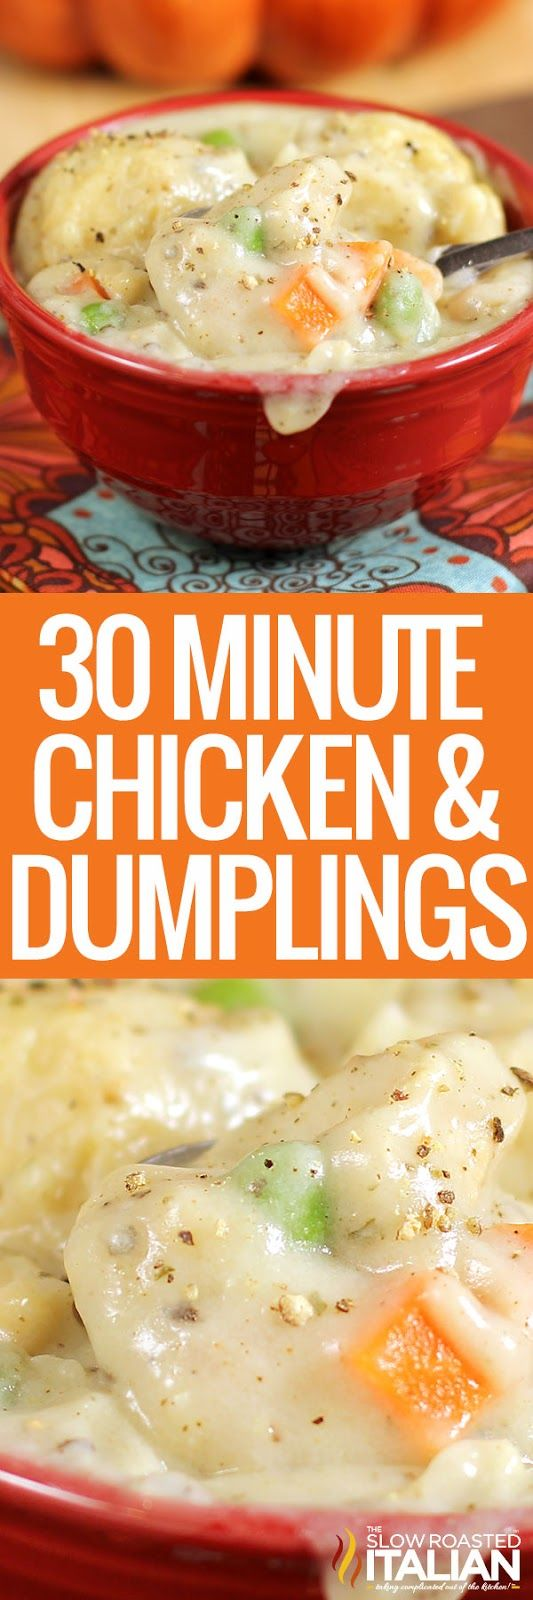 Chicken and Dumplings is a dish that goes from prep to plate in 30 minutes! A simple 1 pot recipe that is packed with chicken, veggies and delicious dumplings, with no canned 'cream of whatever' soup needed.